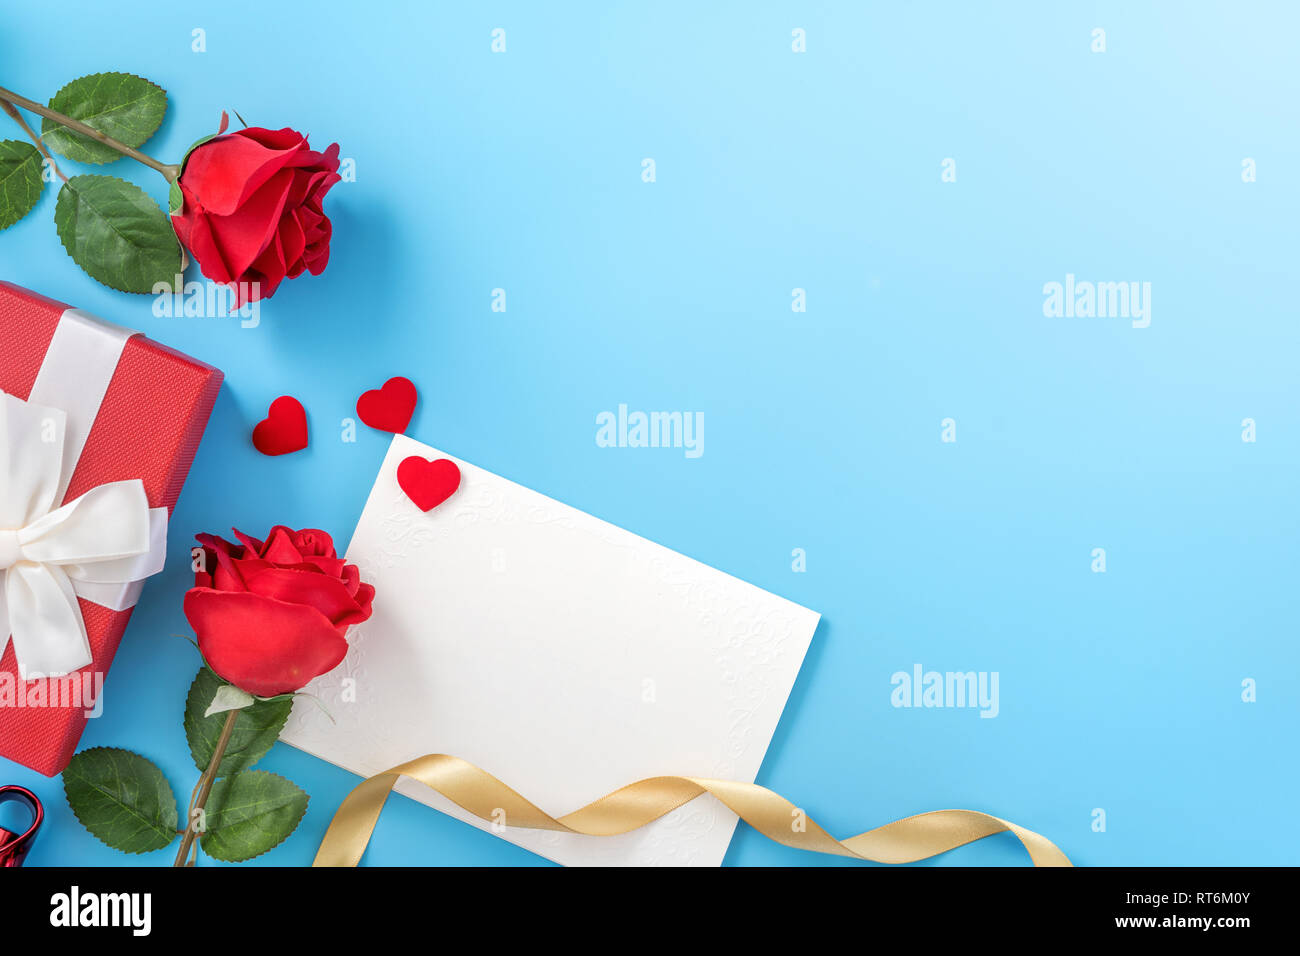 https www alamy com beautiful greeting invitation card concept of mother day valentine day anniversary and birthday isolated on blue color background copy space top image238633947 html